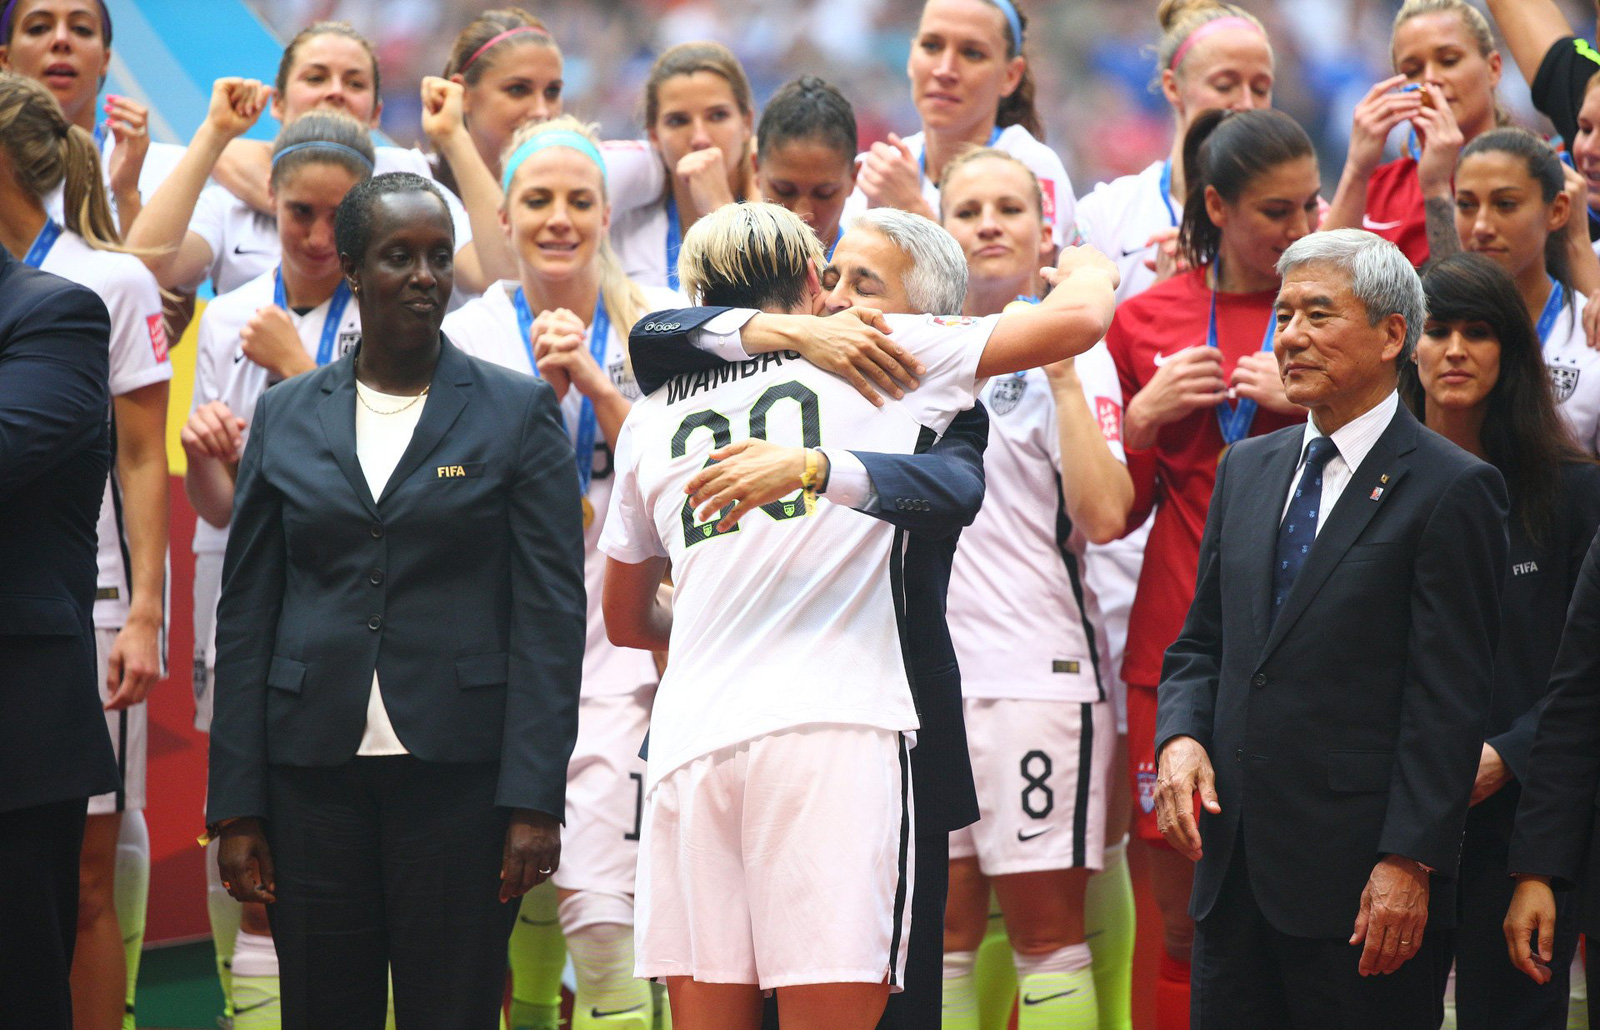 Abby Wambach hugs U.S. Soccer president Sunil Gulati on the winner's podium after capturing the Women's World Cup title